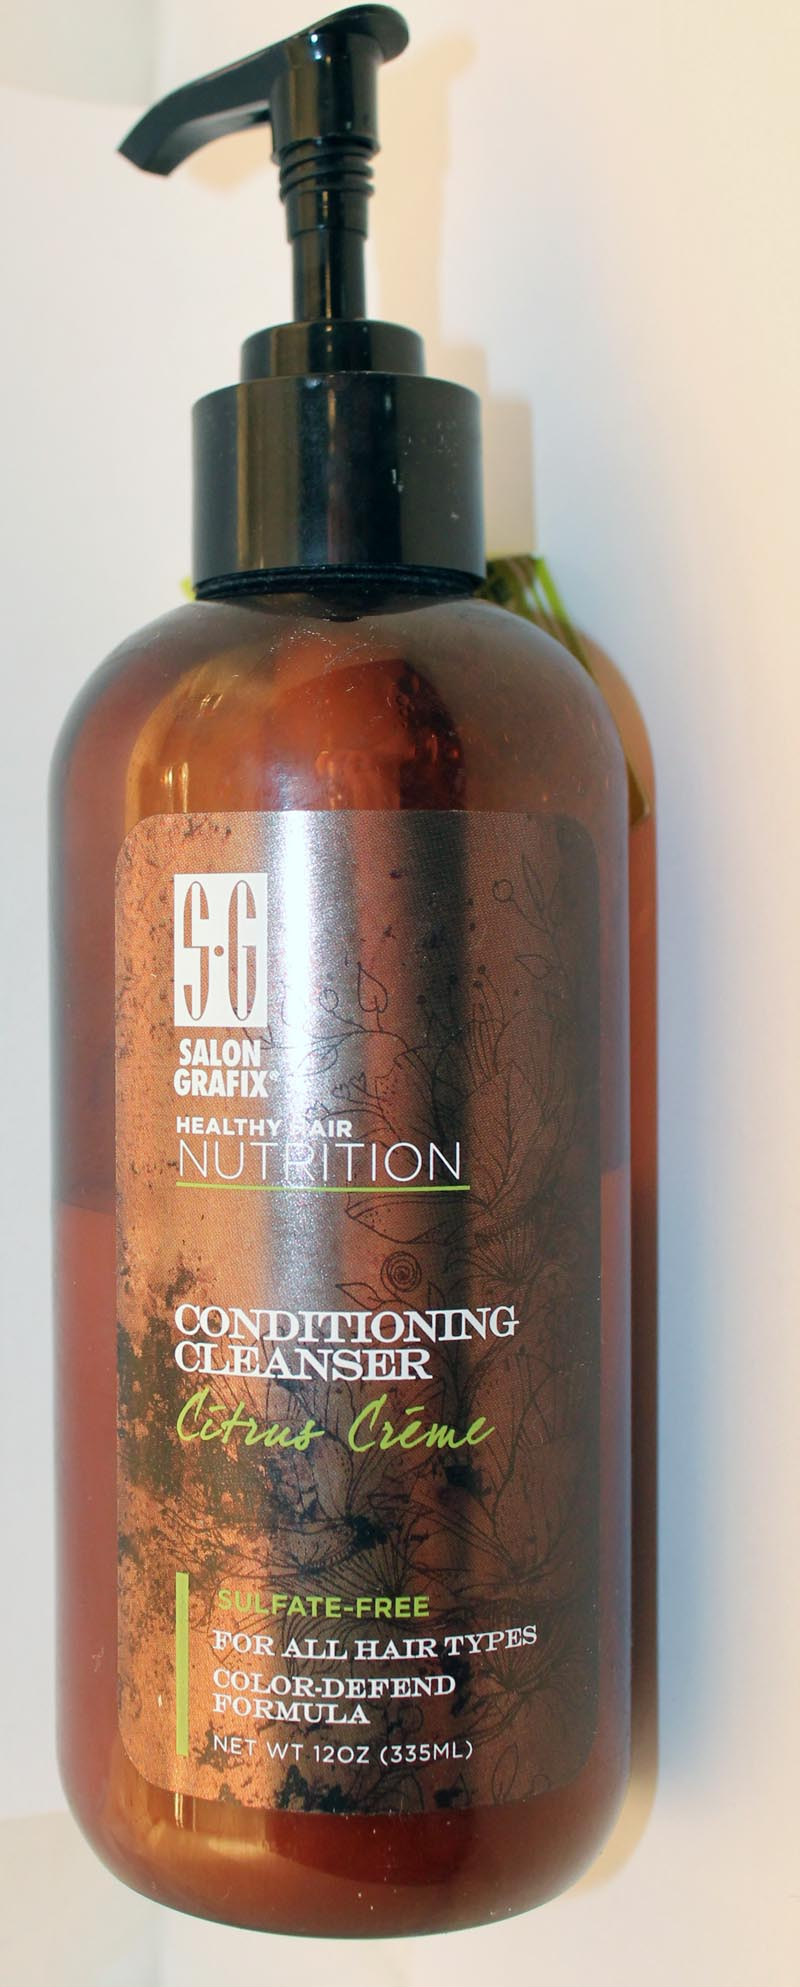 Salon Grafix Conditioning Cleanser in Citrus Creme